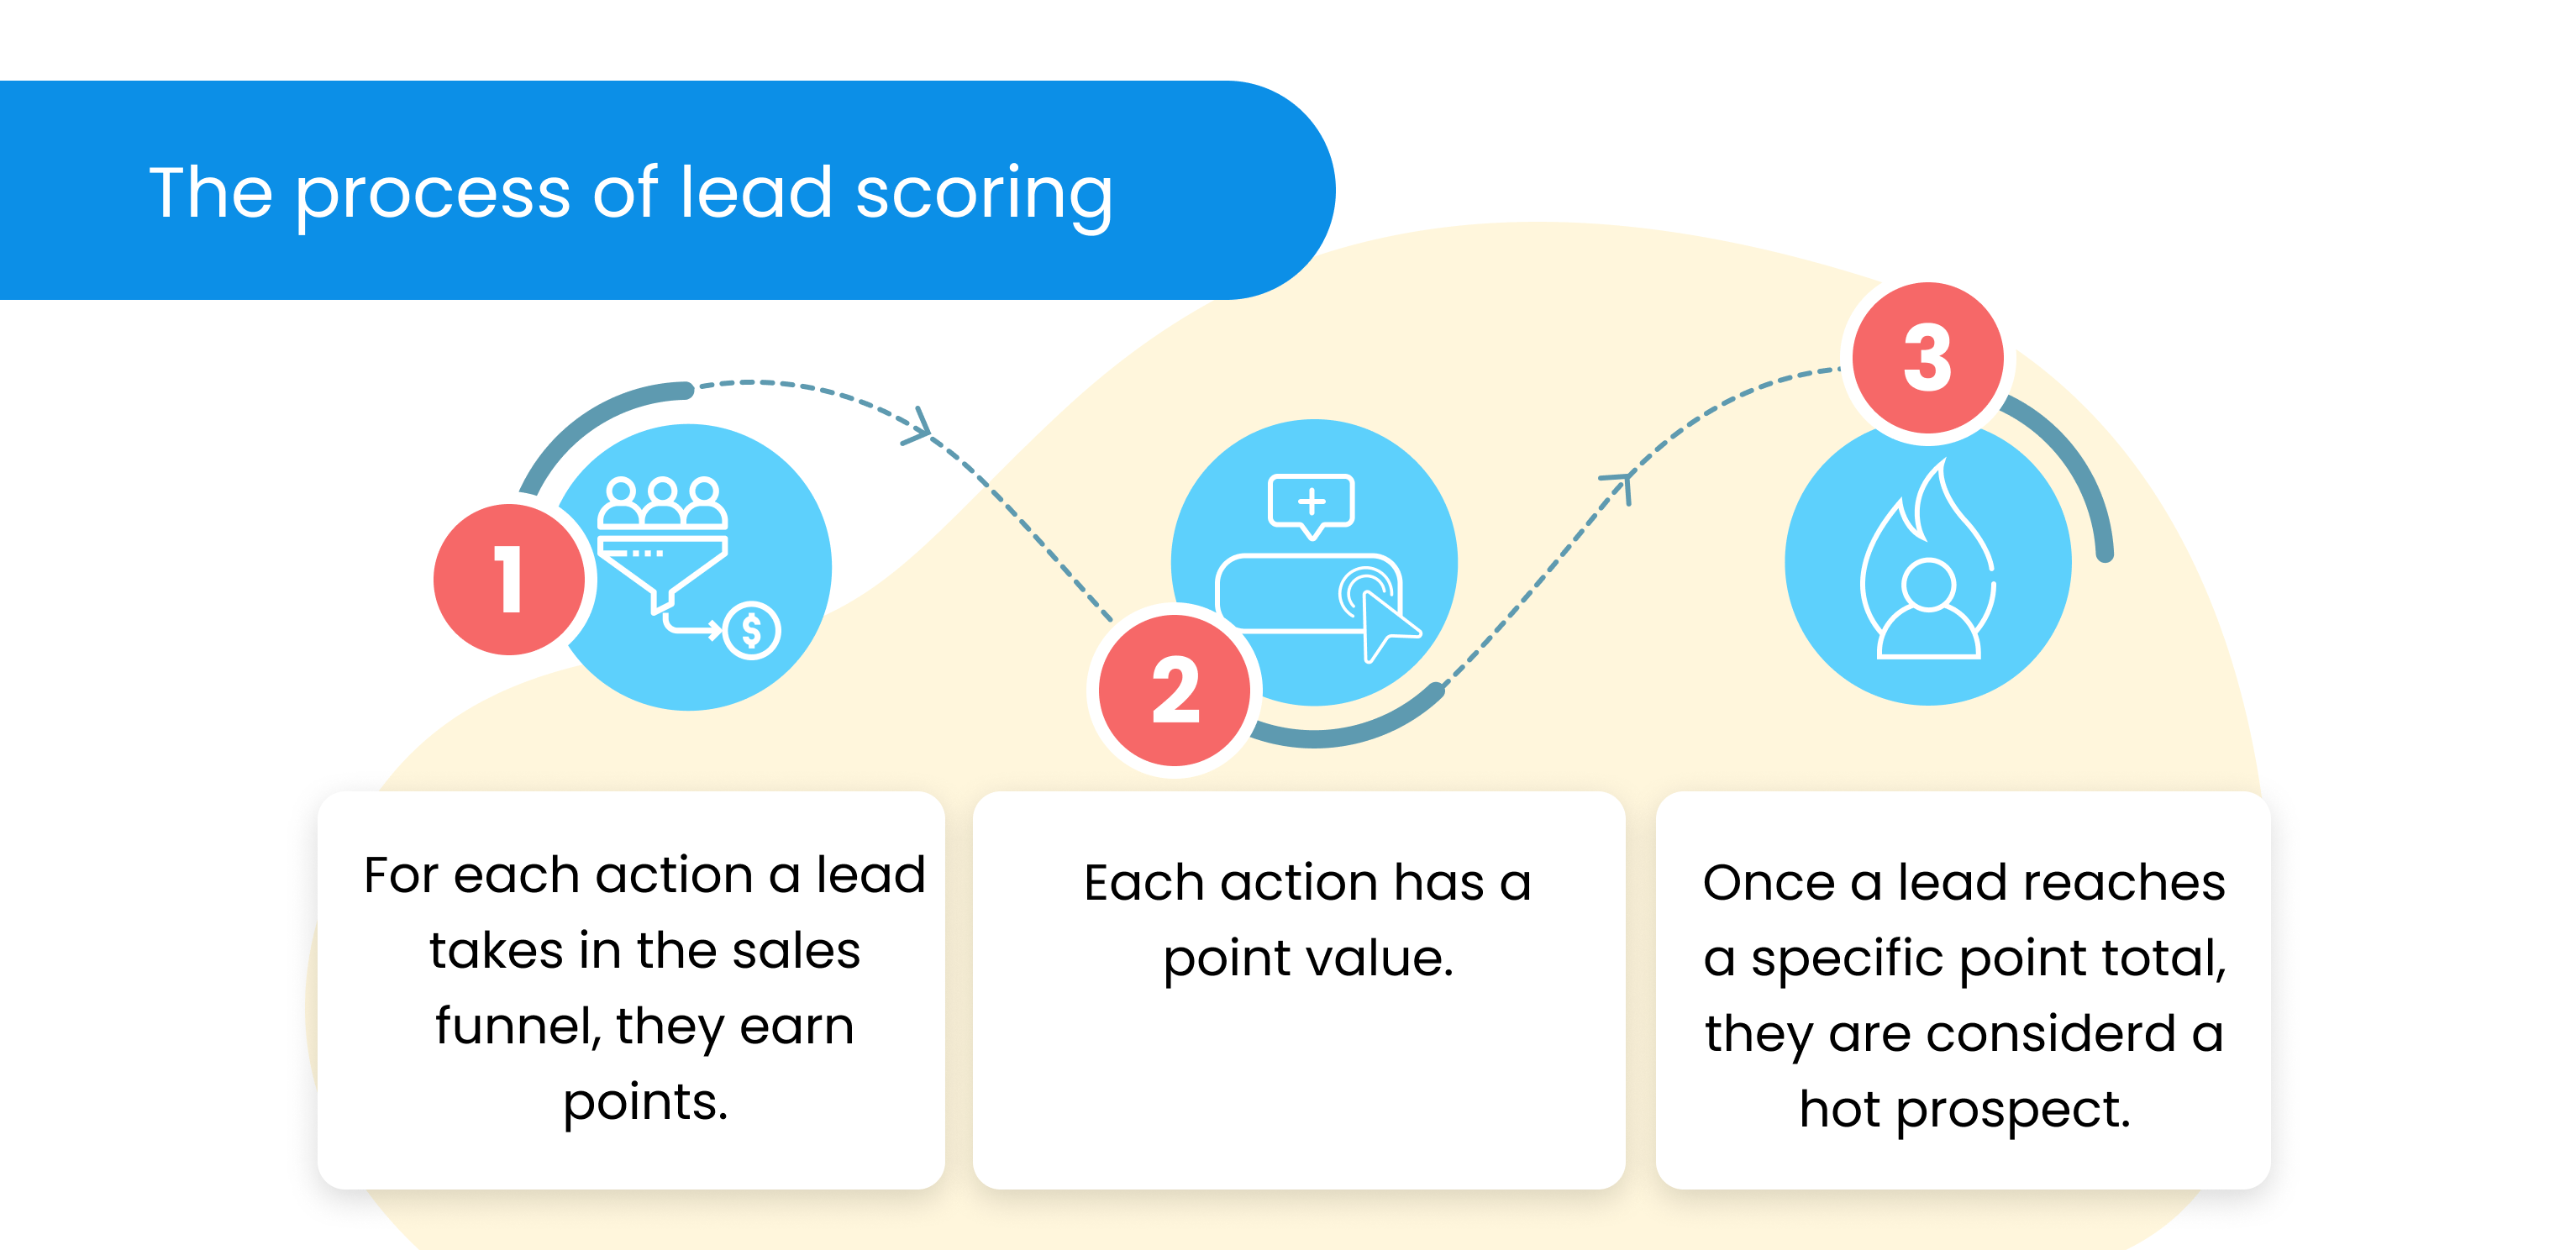 3 Blue elements with text showing the process of Lead Scoring